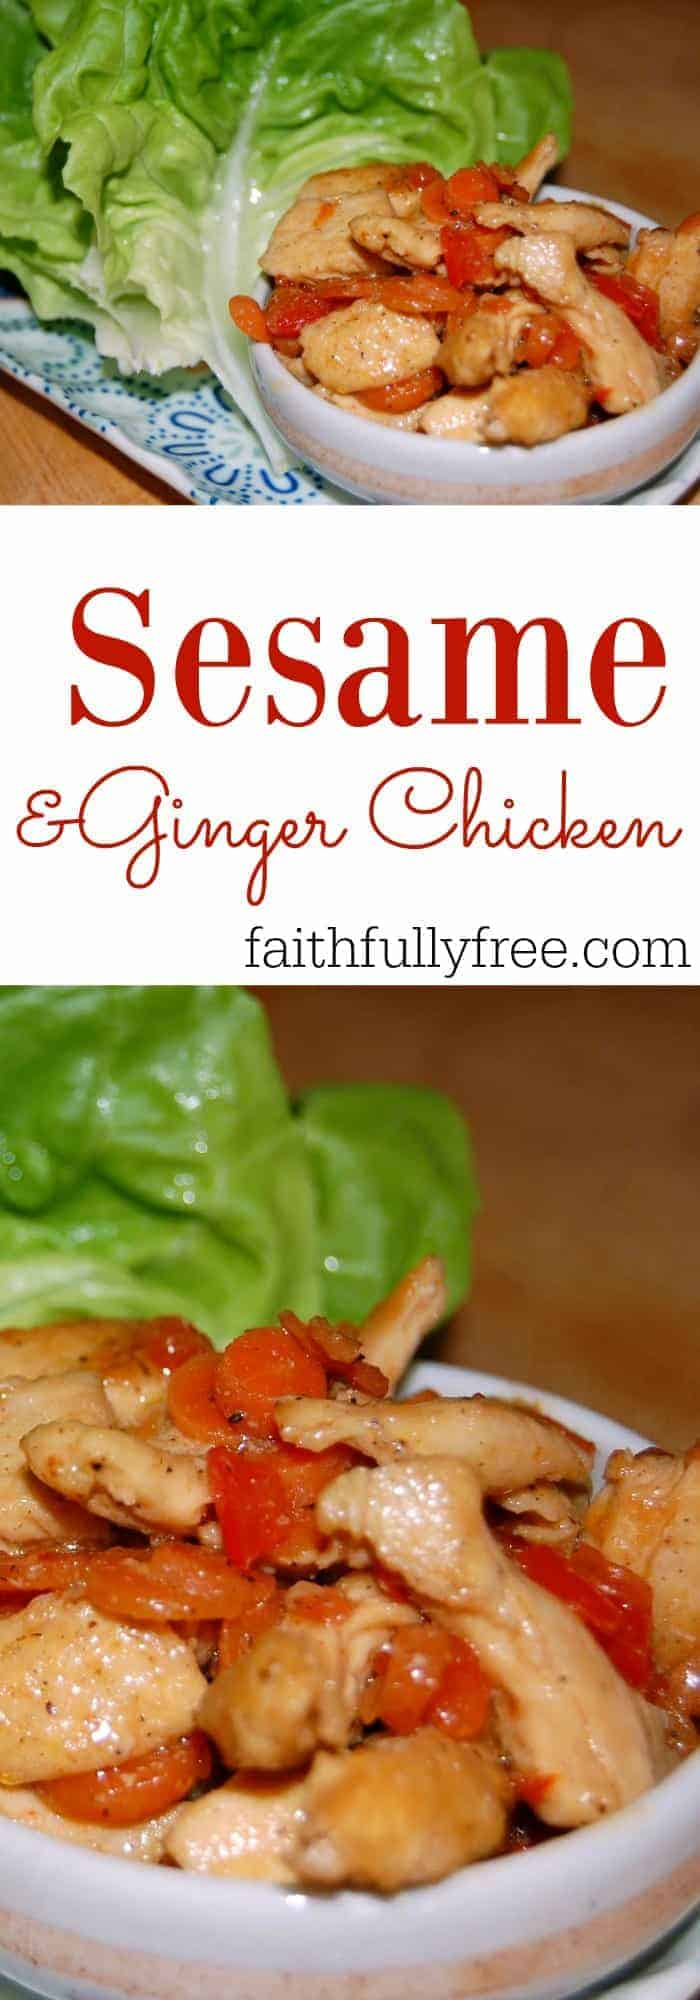 Asian Family Dinners Sesame and Ginger Chicken